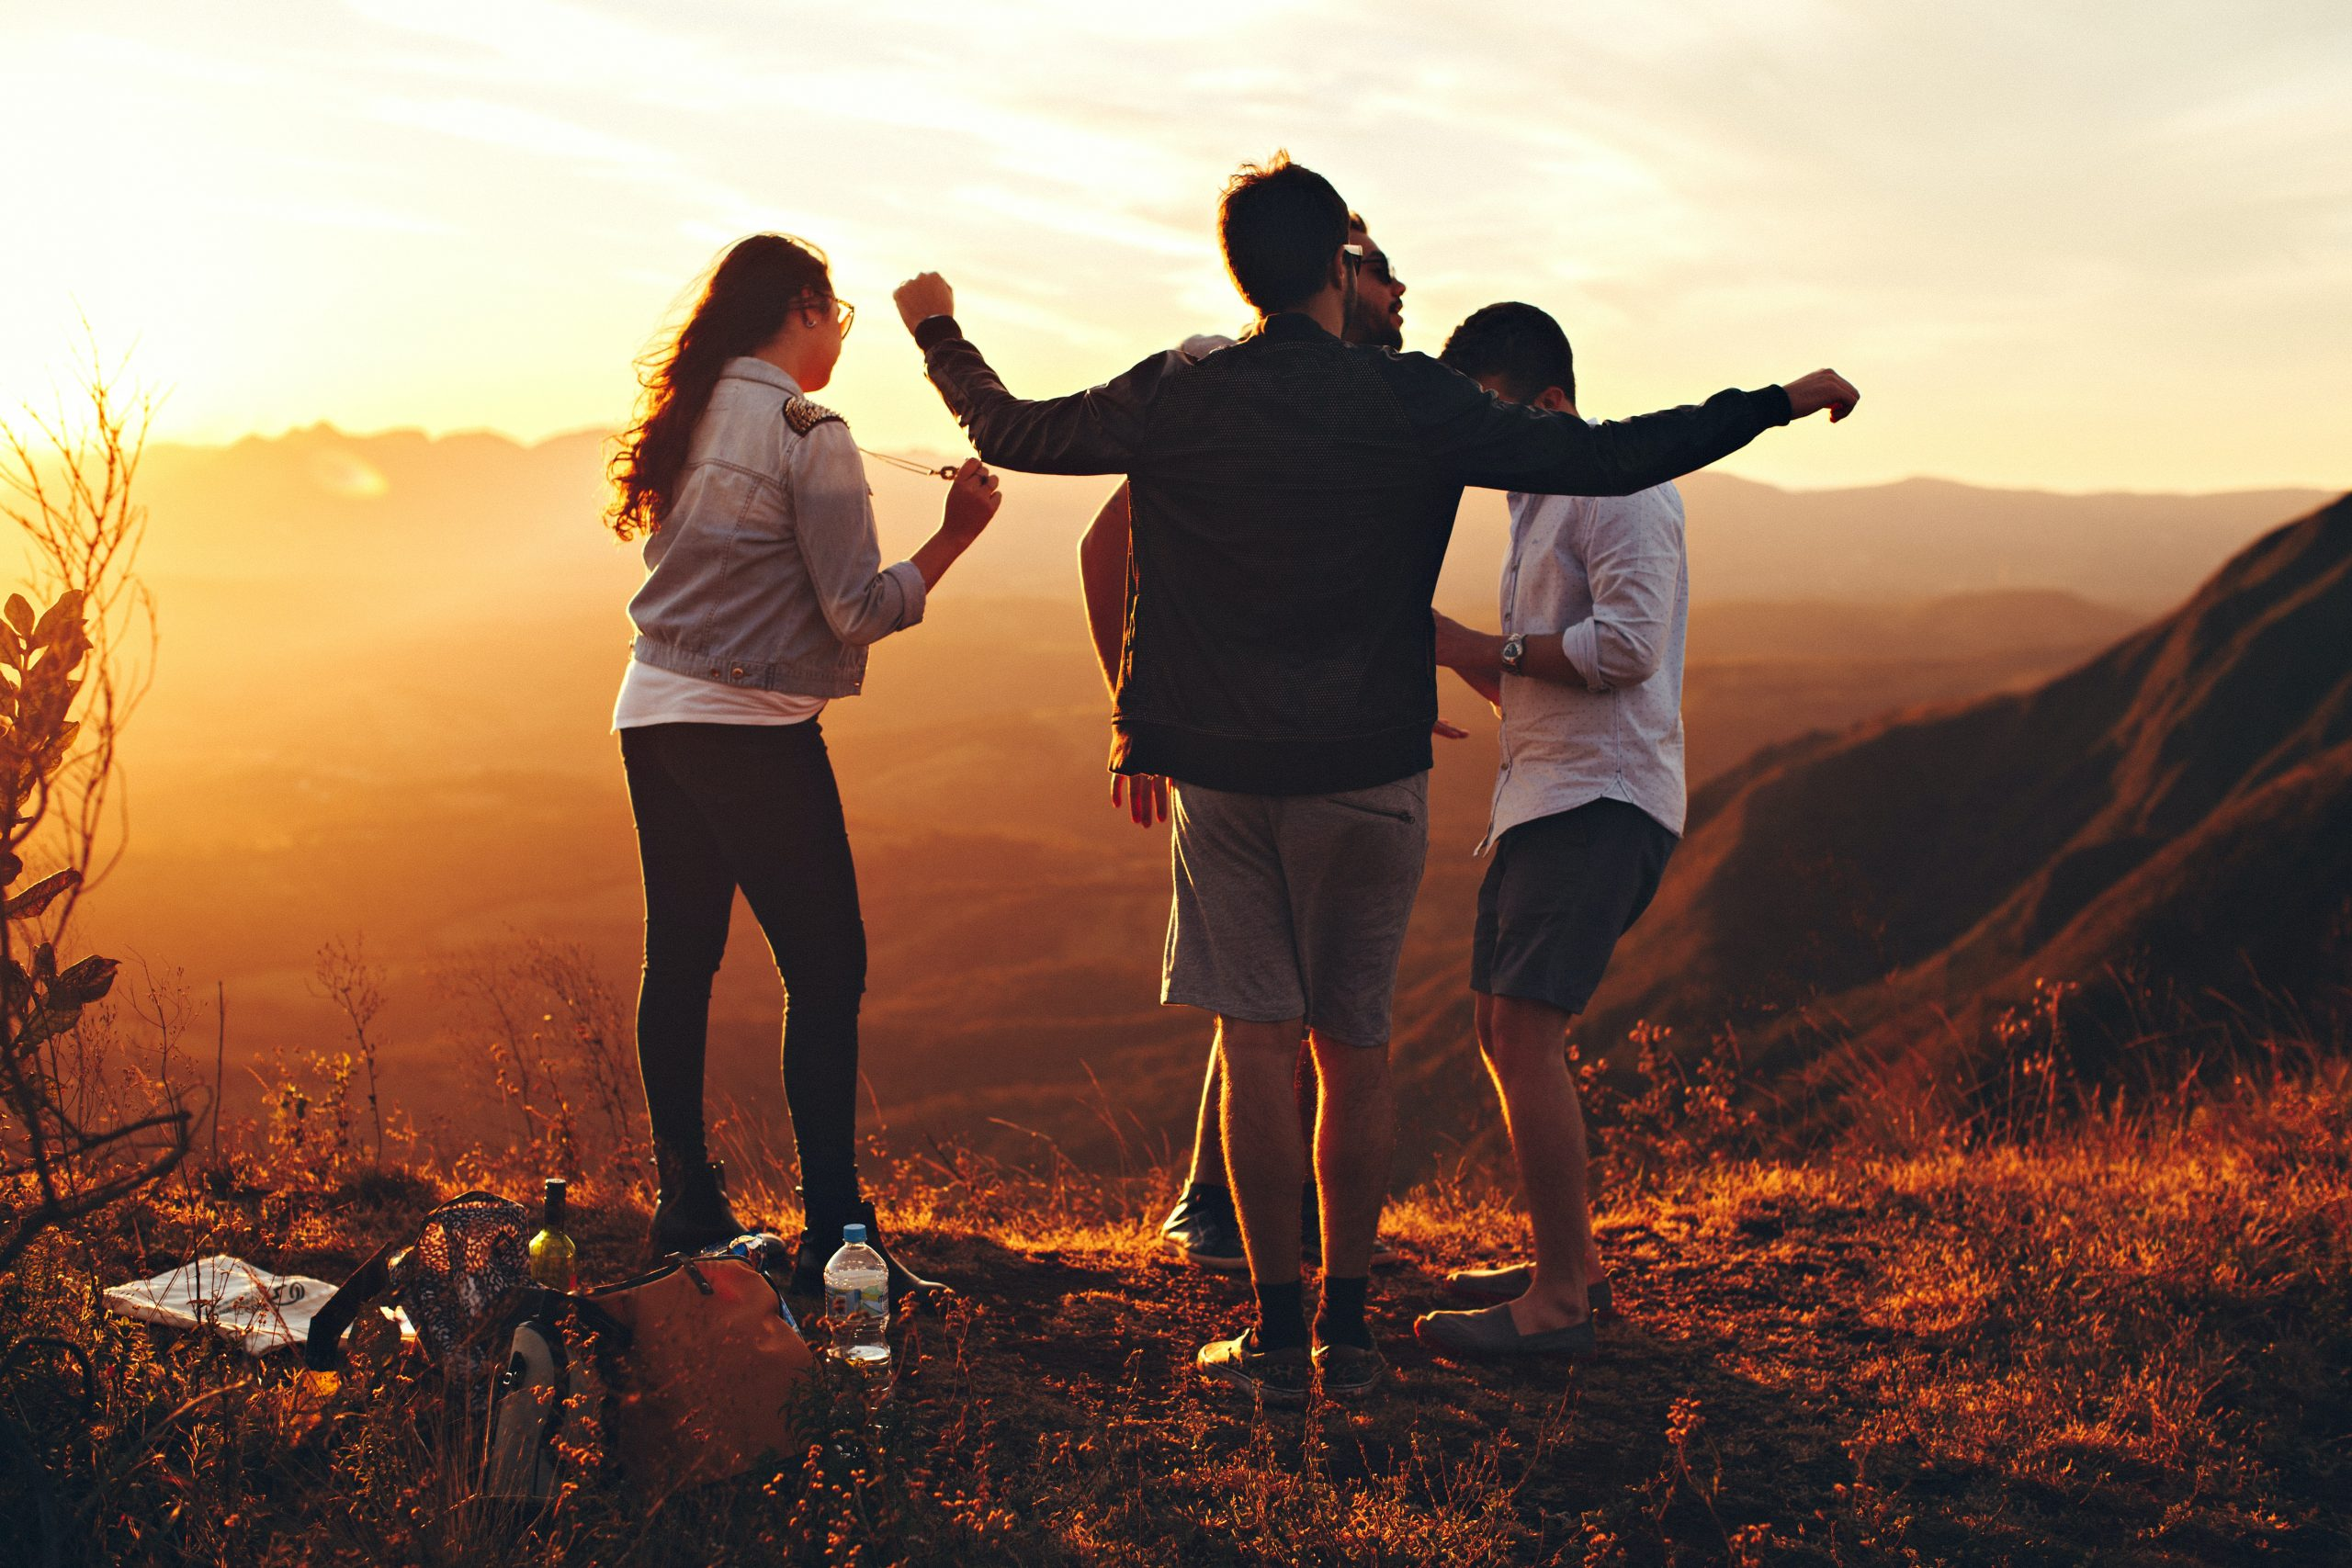 friends and family photography ideas for instagram